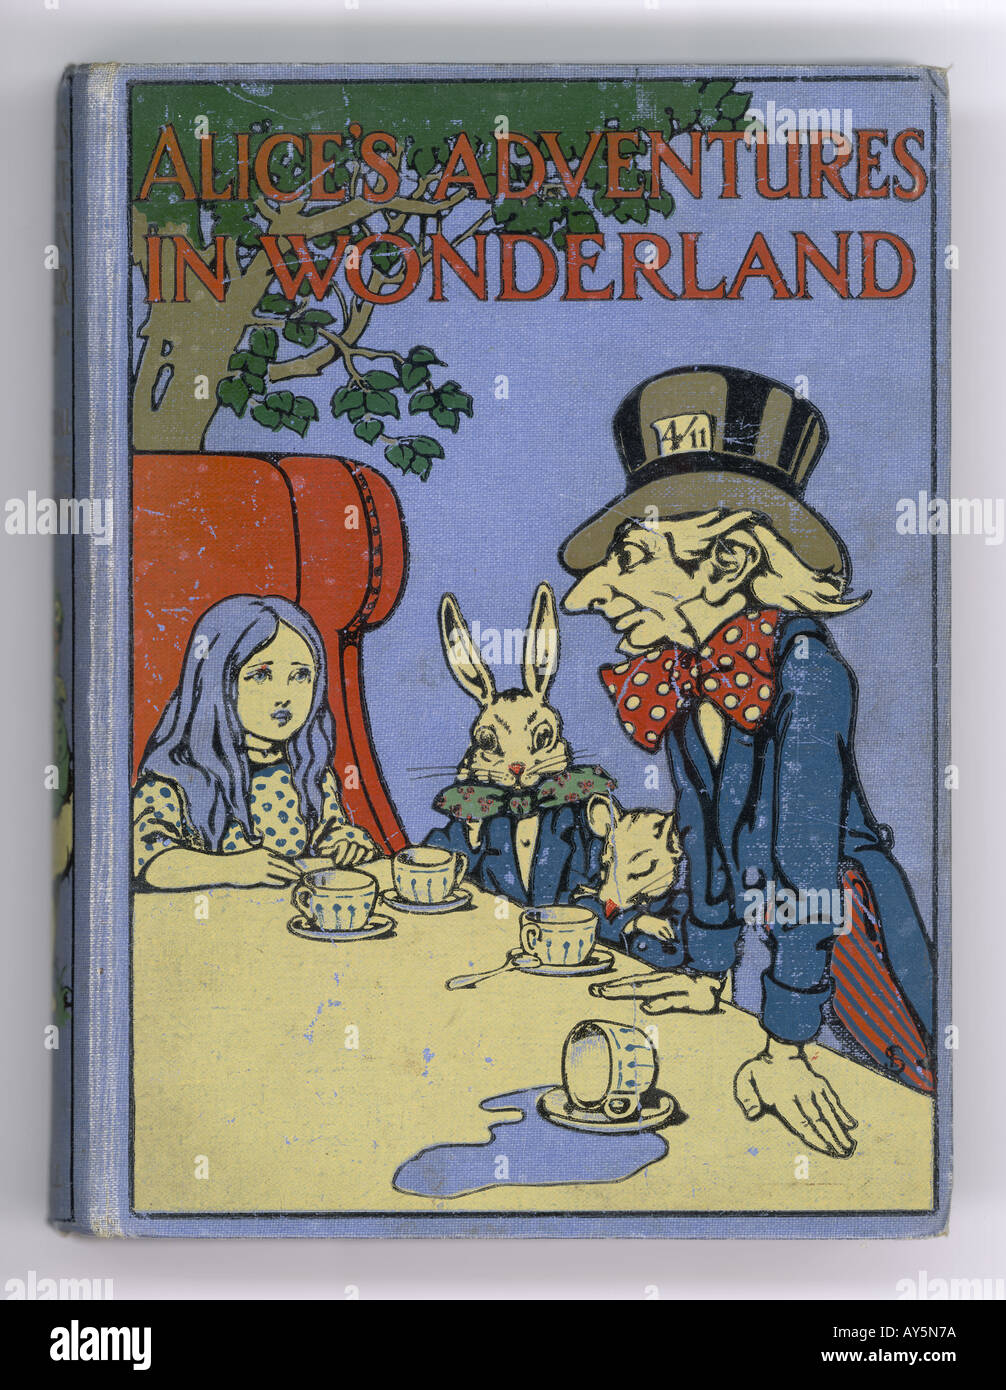 Alices Adventures In Wonderland Cover - Stock Image